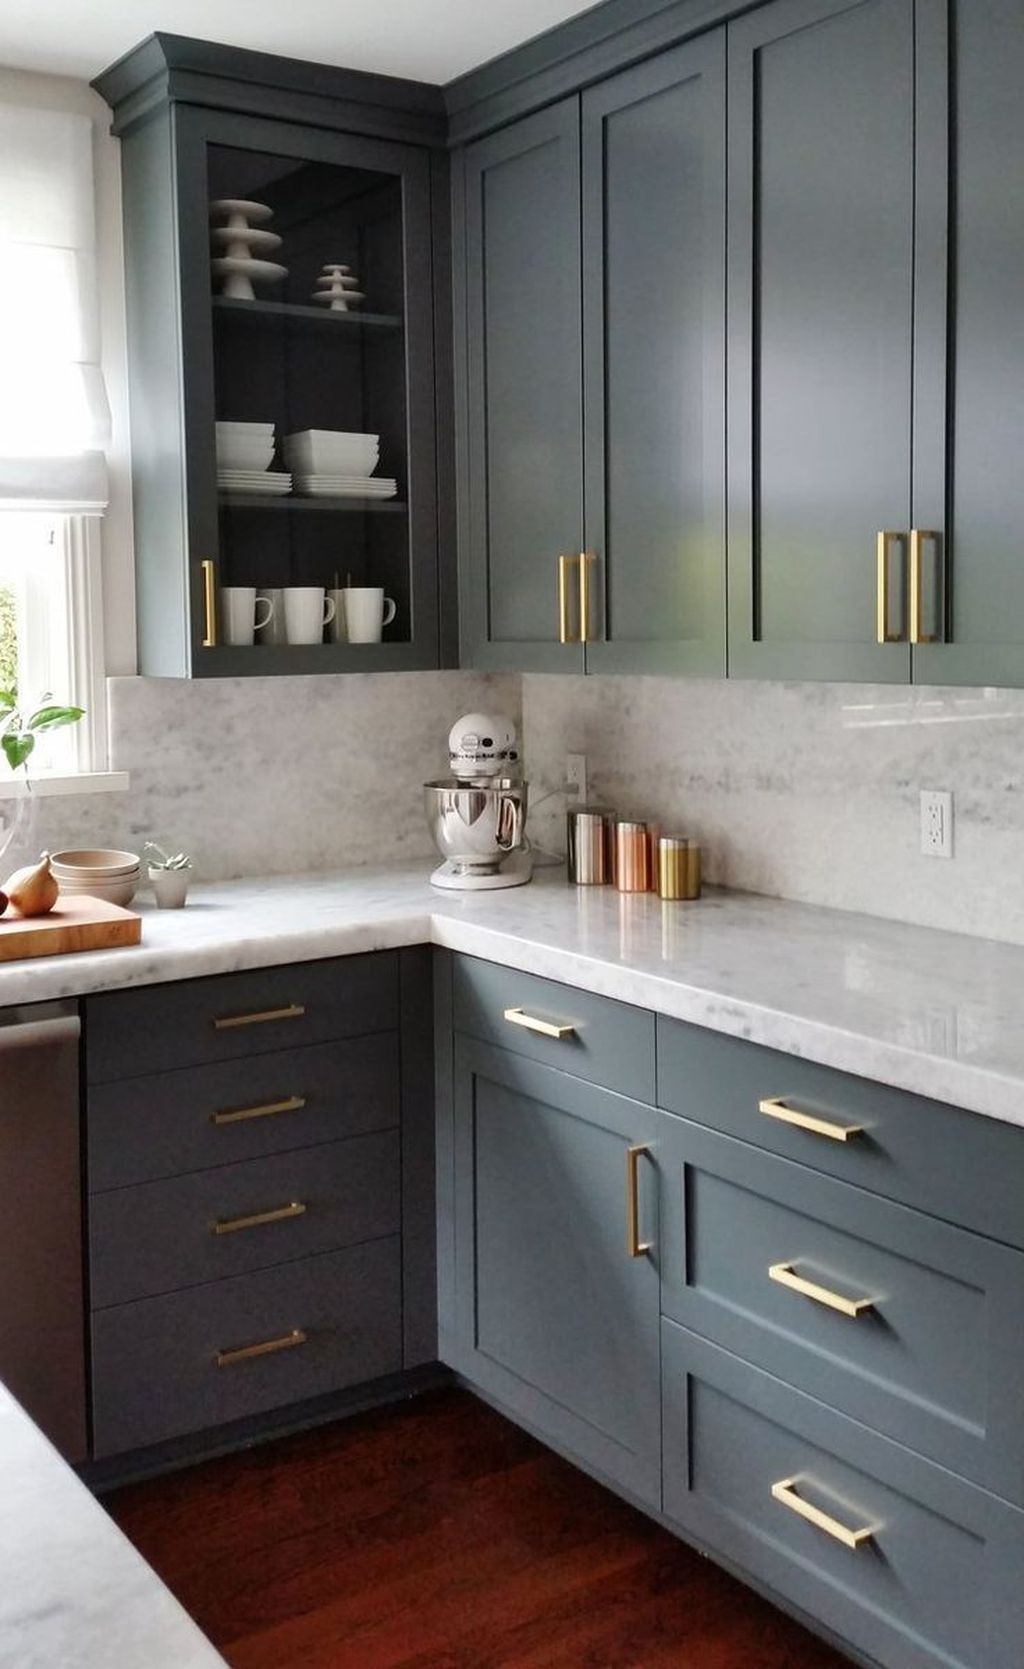 39 Creative Gray Kitchen Cabinet Ideas #kitchen